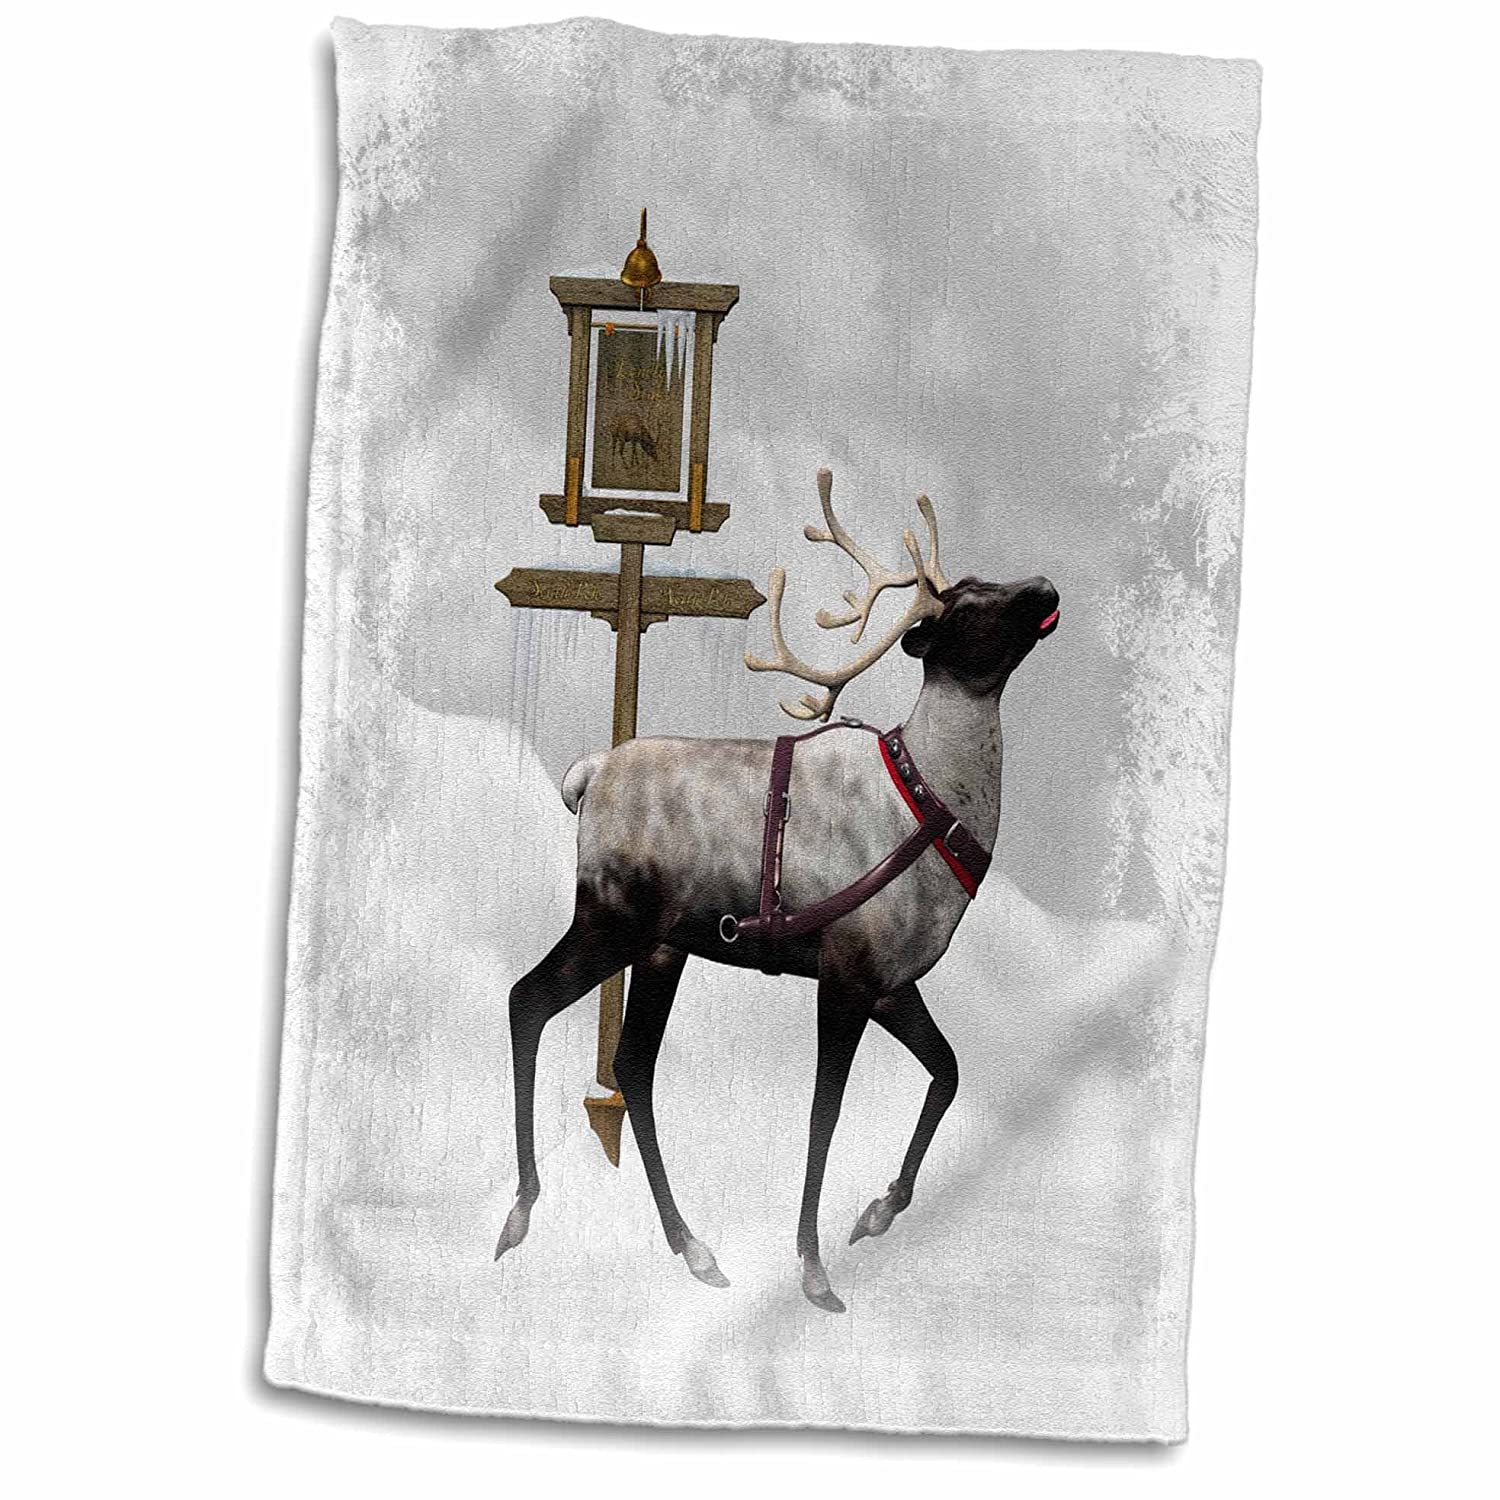 3D Rose A Reindeer Show The Way to The North Pole TWL_181787_1 Towel 15' x 22' Multicolor